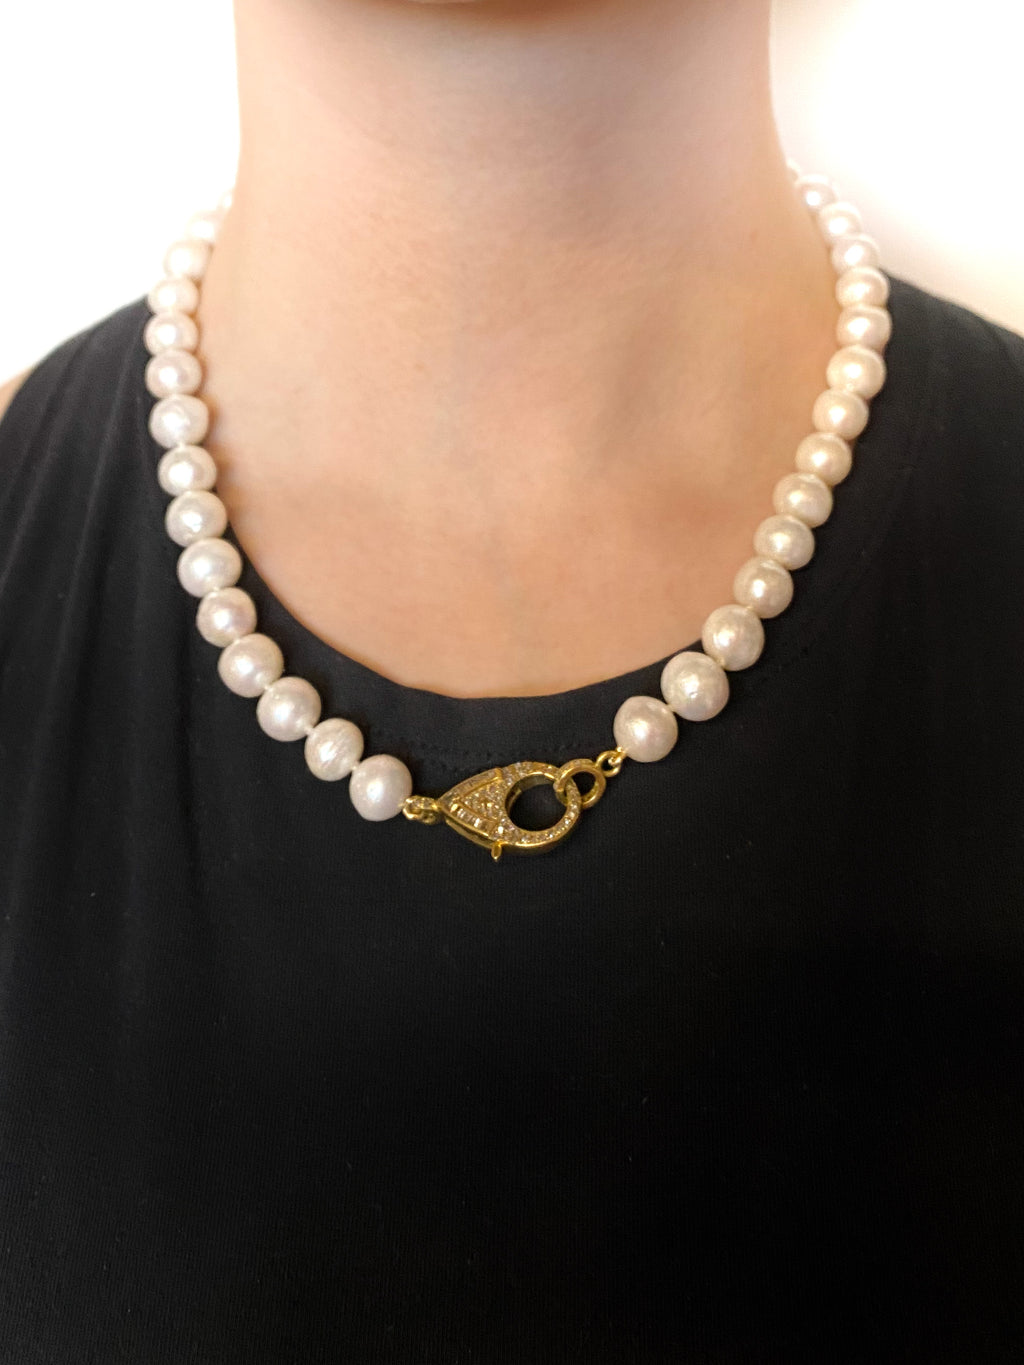 Knotted Freshwater Pearls with Pave Diamond clasp in Brass